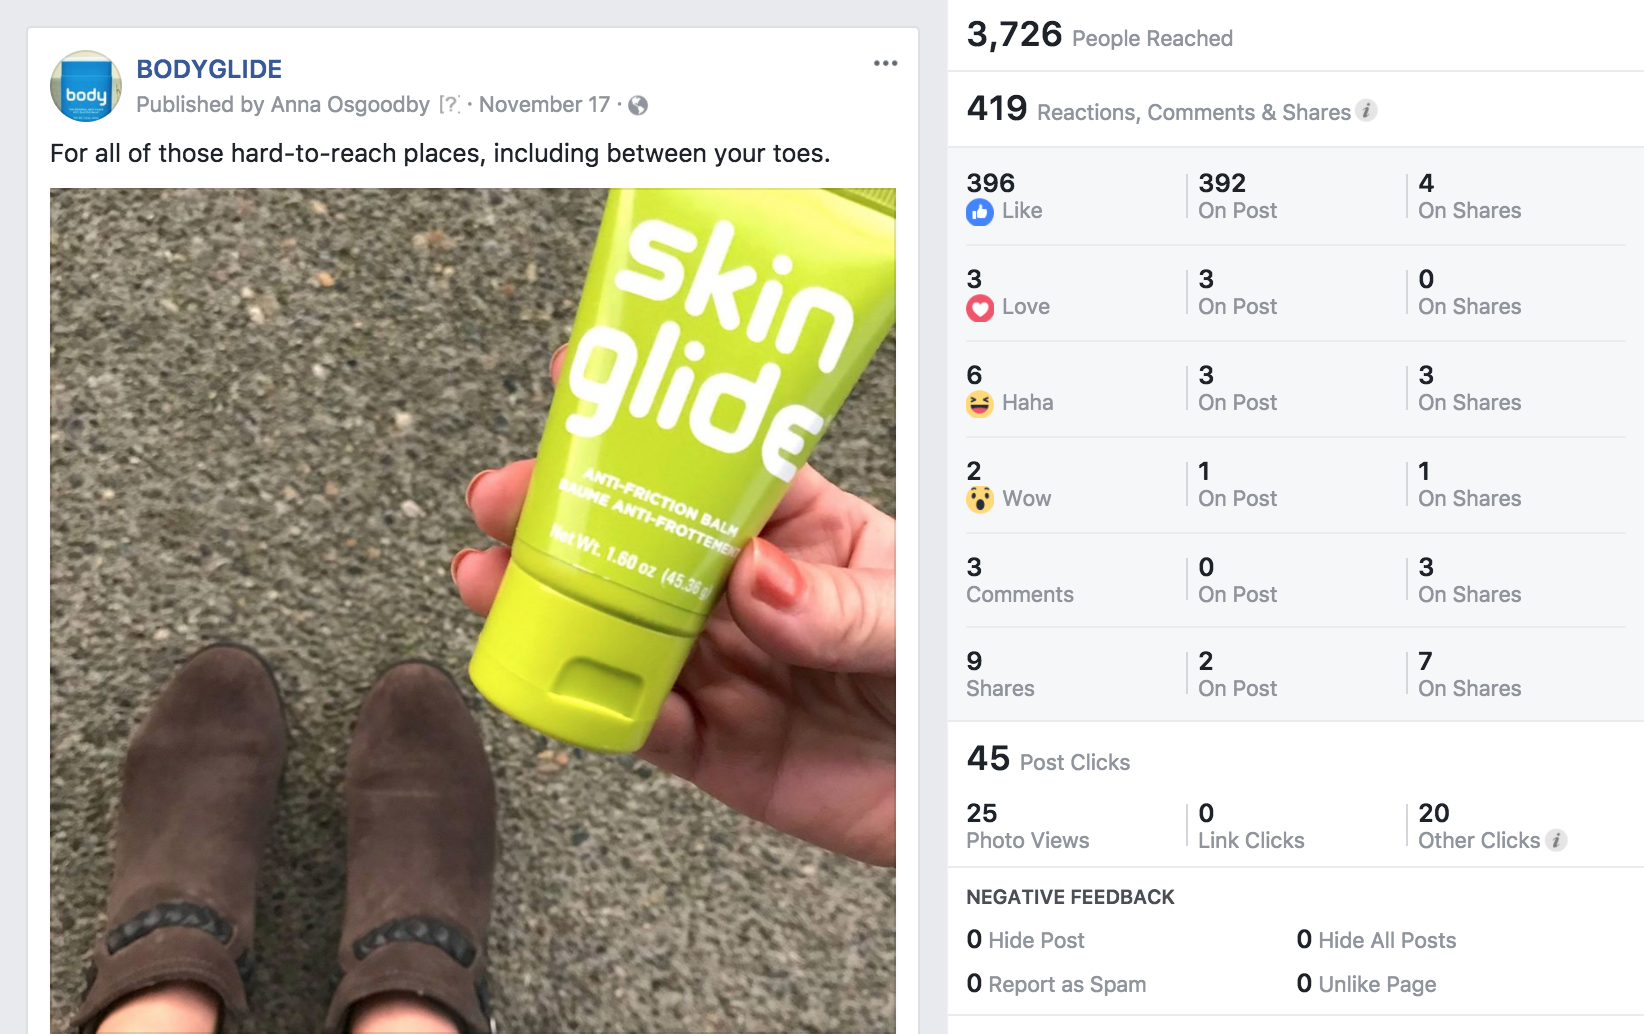 Bold & Pop : Fitness Industry Social Media and Influencer Marketing Case Study